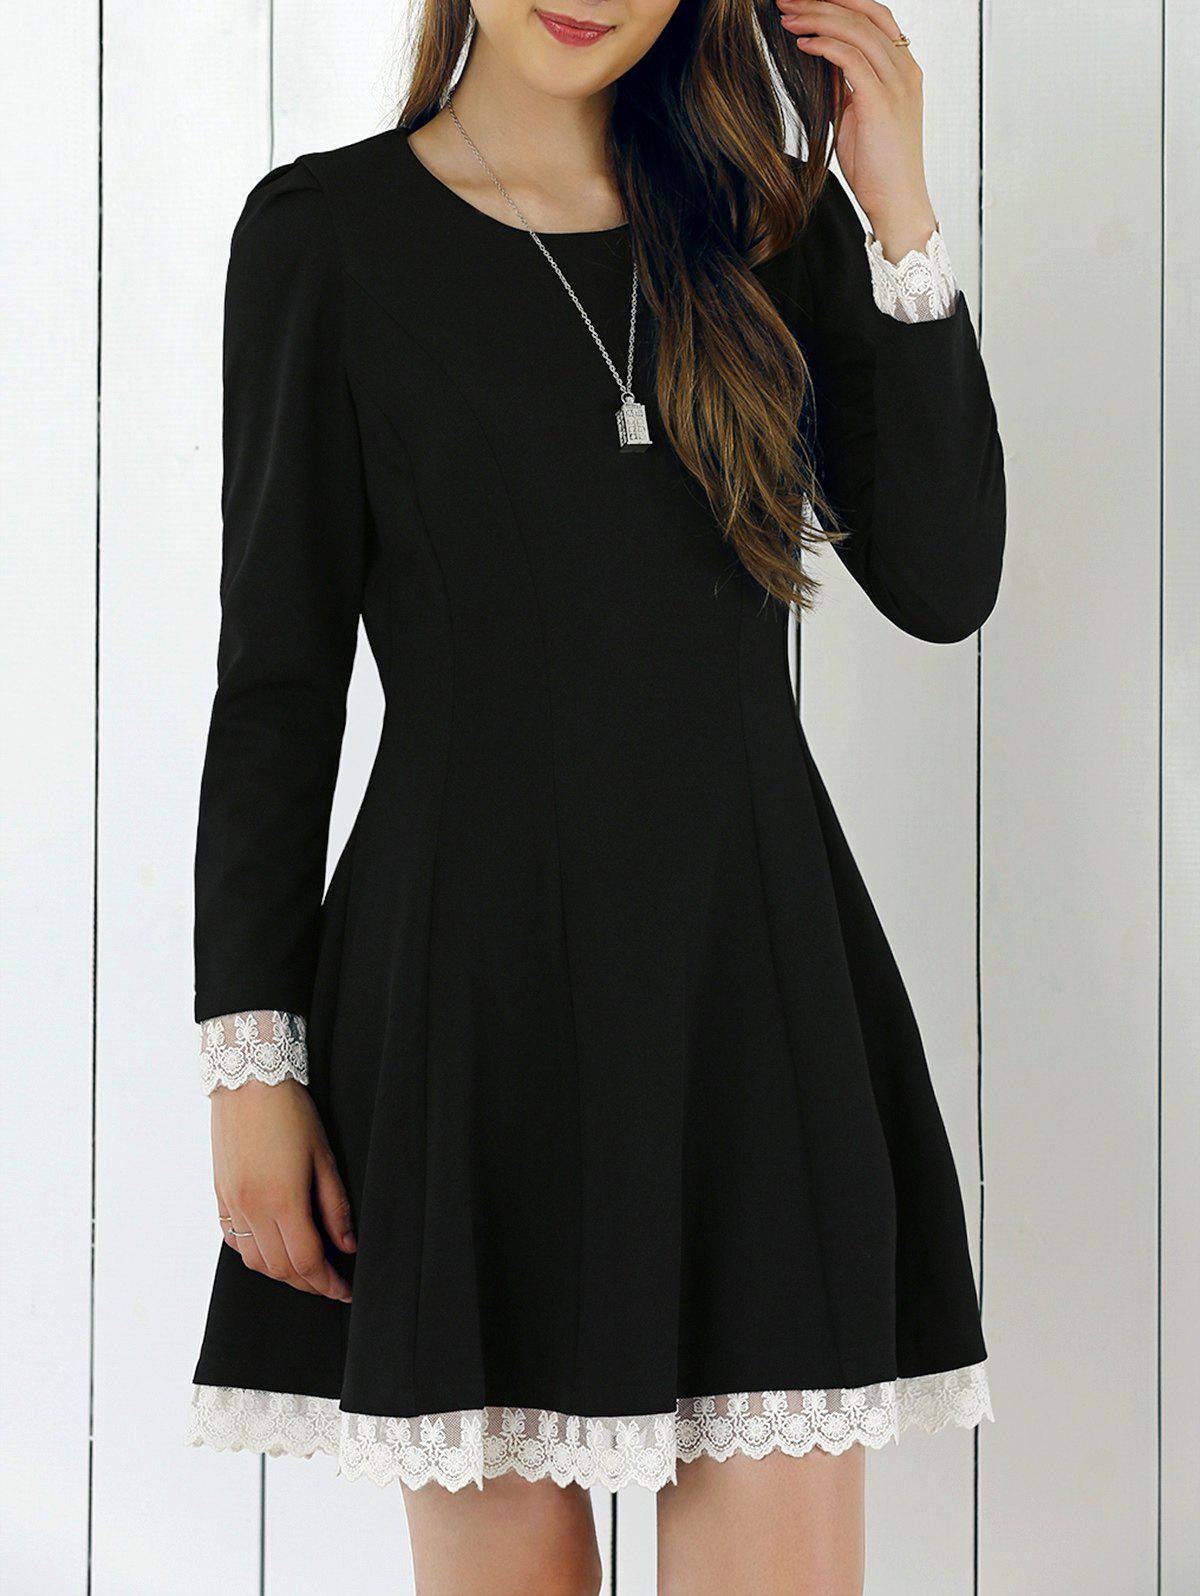 Lace Patchwork Fit and Flare Dress - BLACK XL